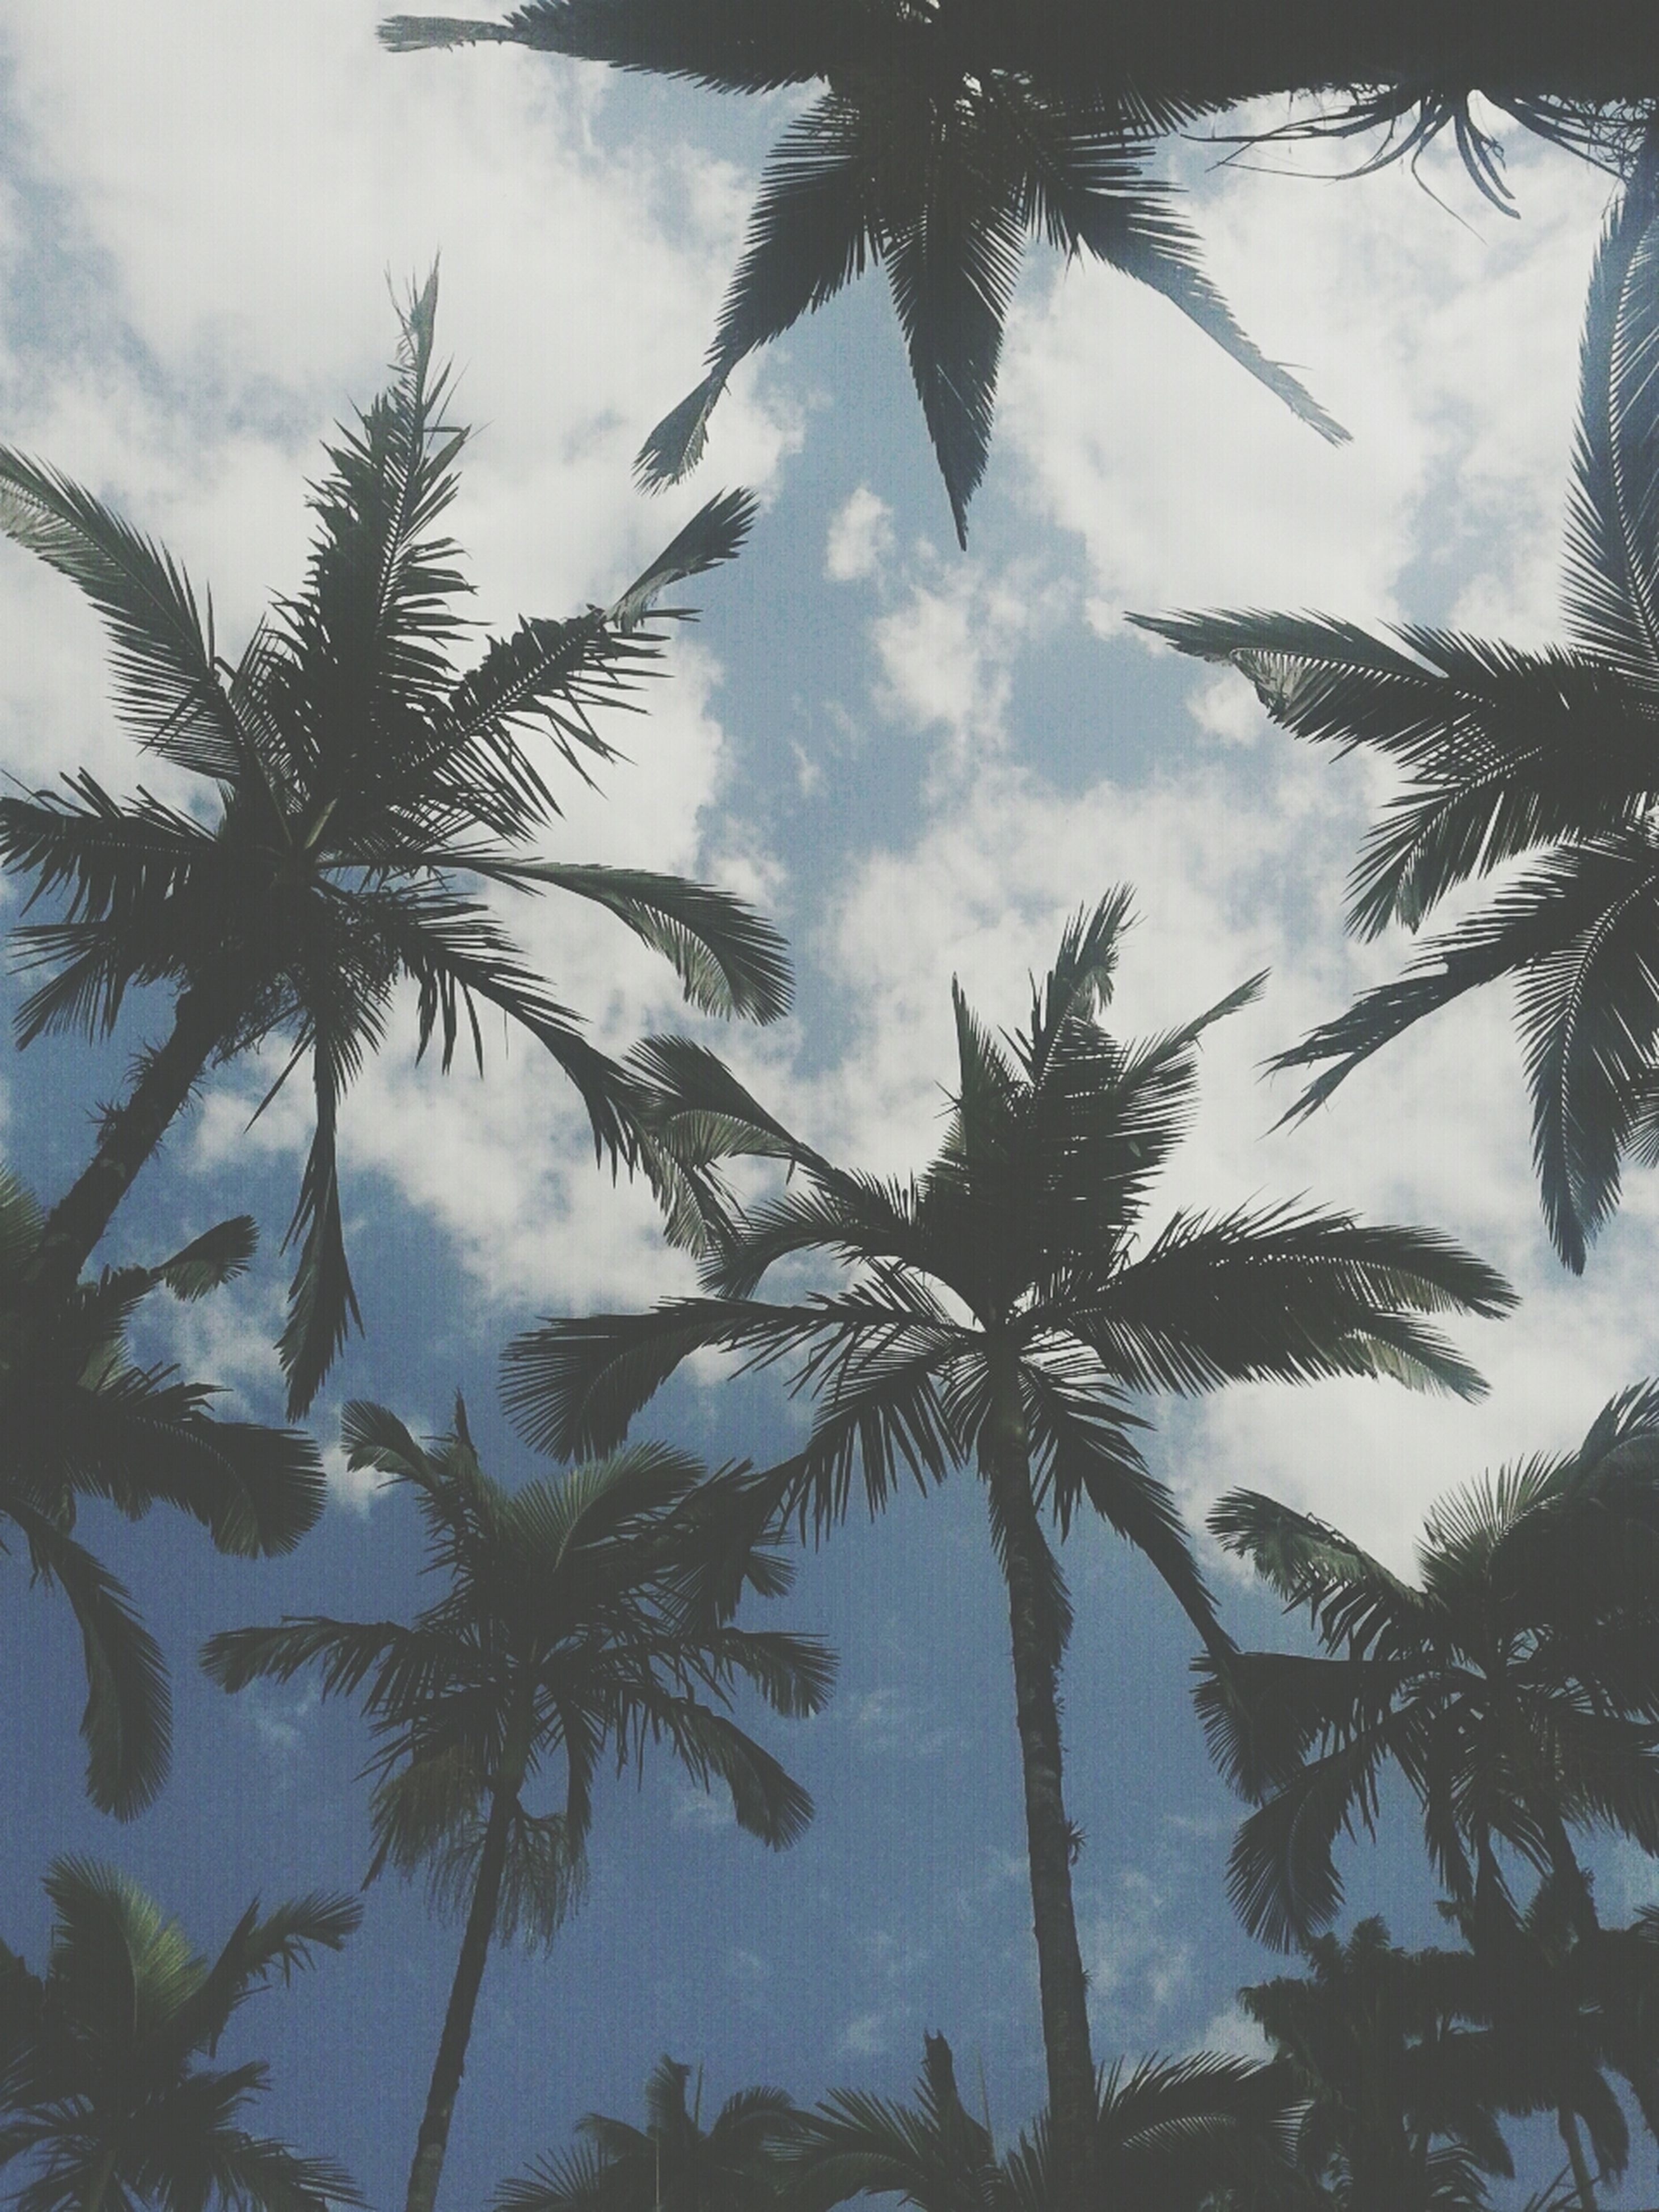 tree, sky, palm tree, low angle view, cloud - sky, tranquility, growth, nature, beauty in nature, branch, scenics, tranquil scene, cloud, silhouette, cloudy, outdoors, water, day, no people, leaf